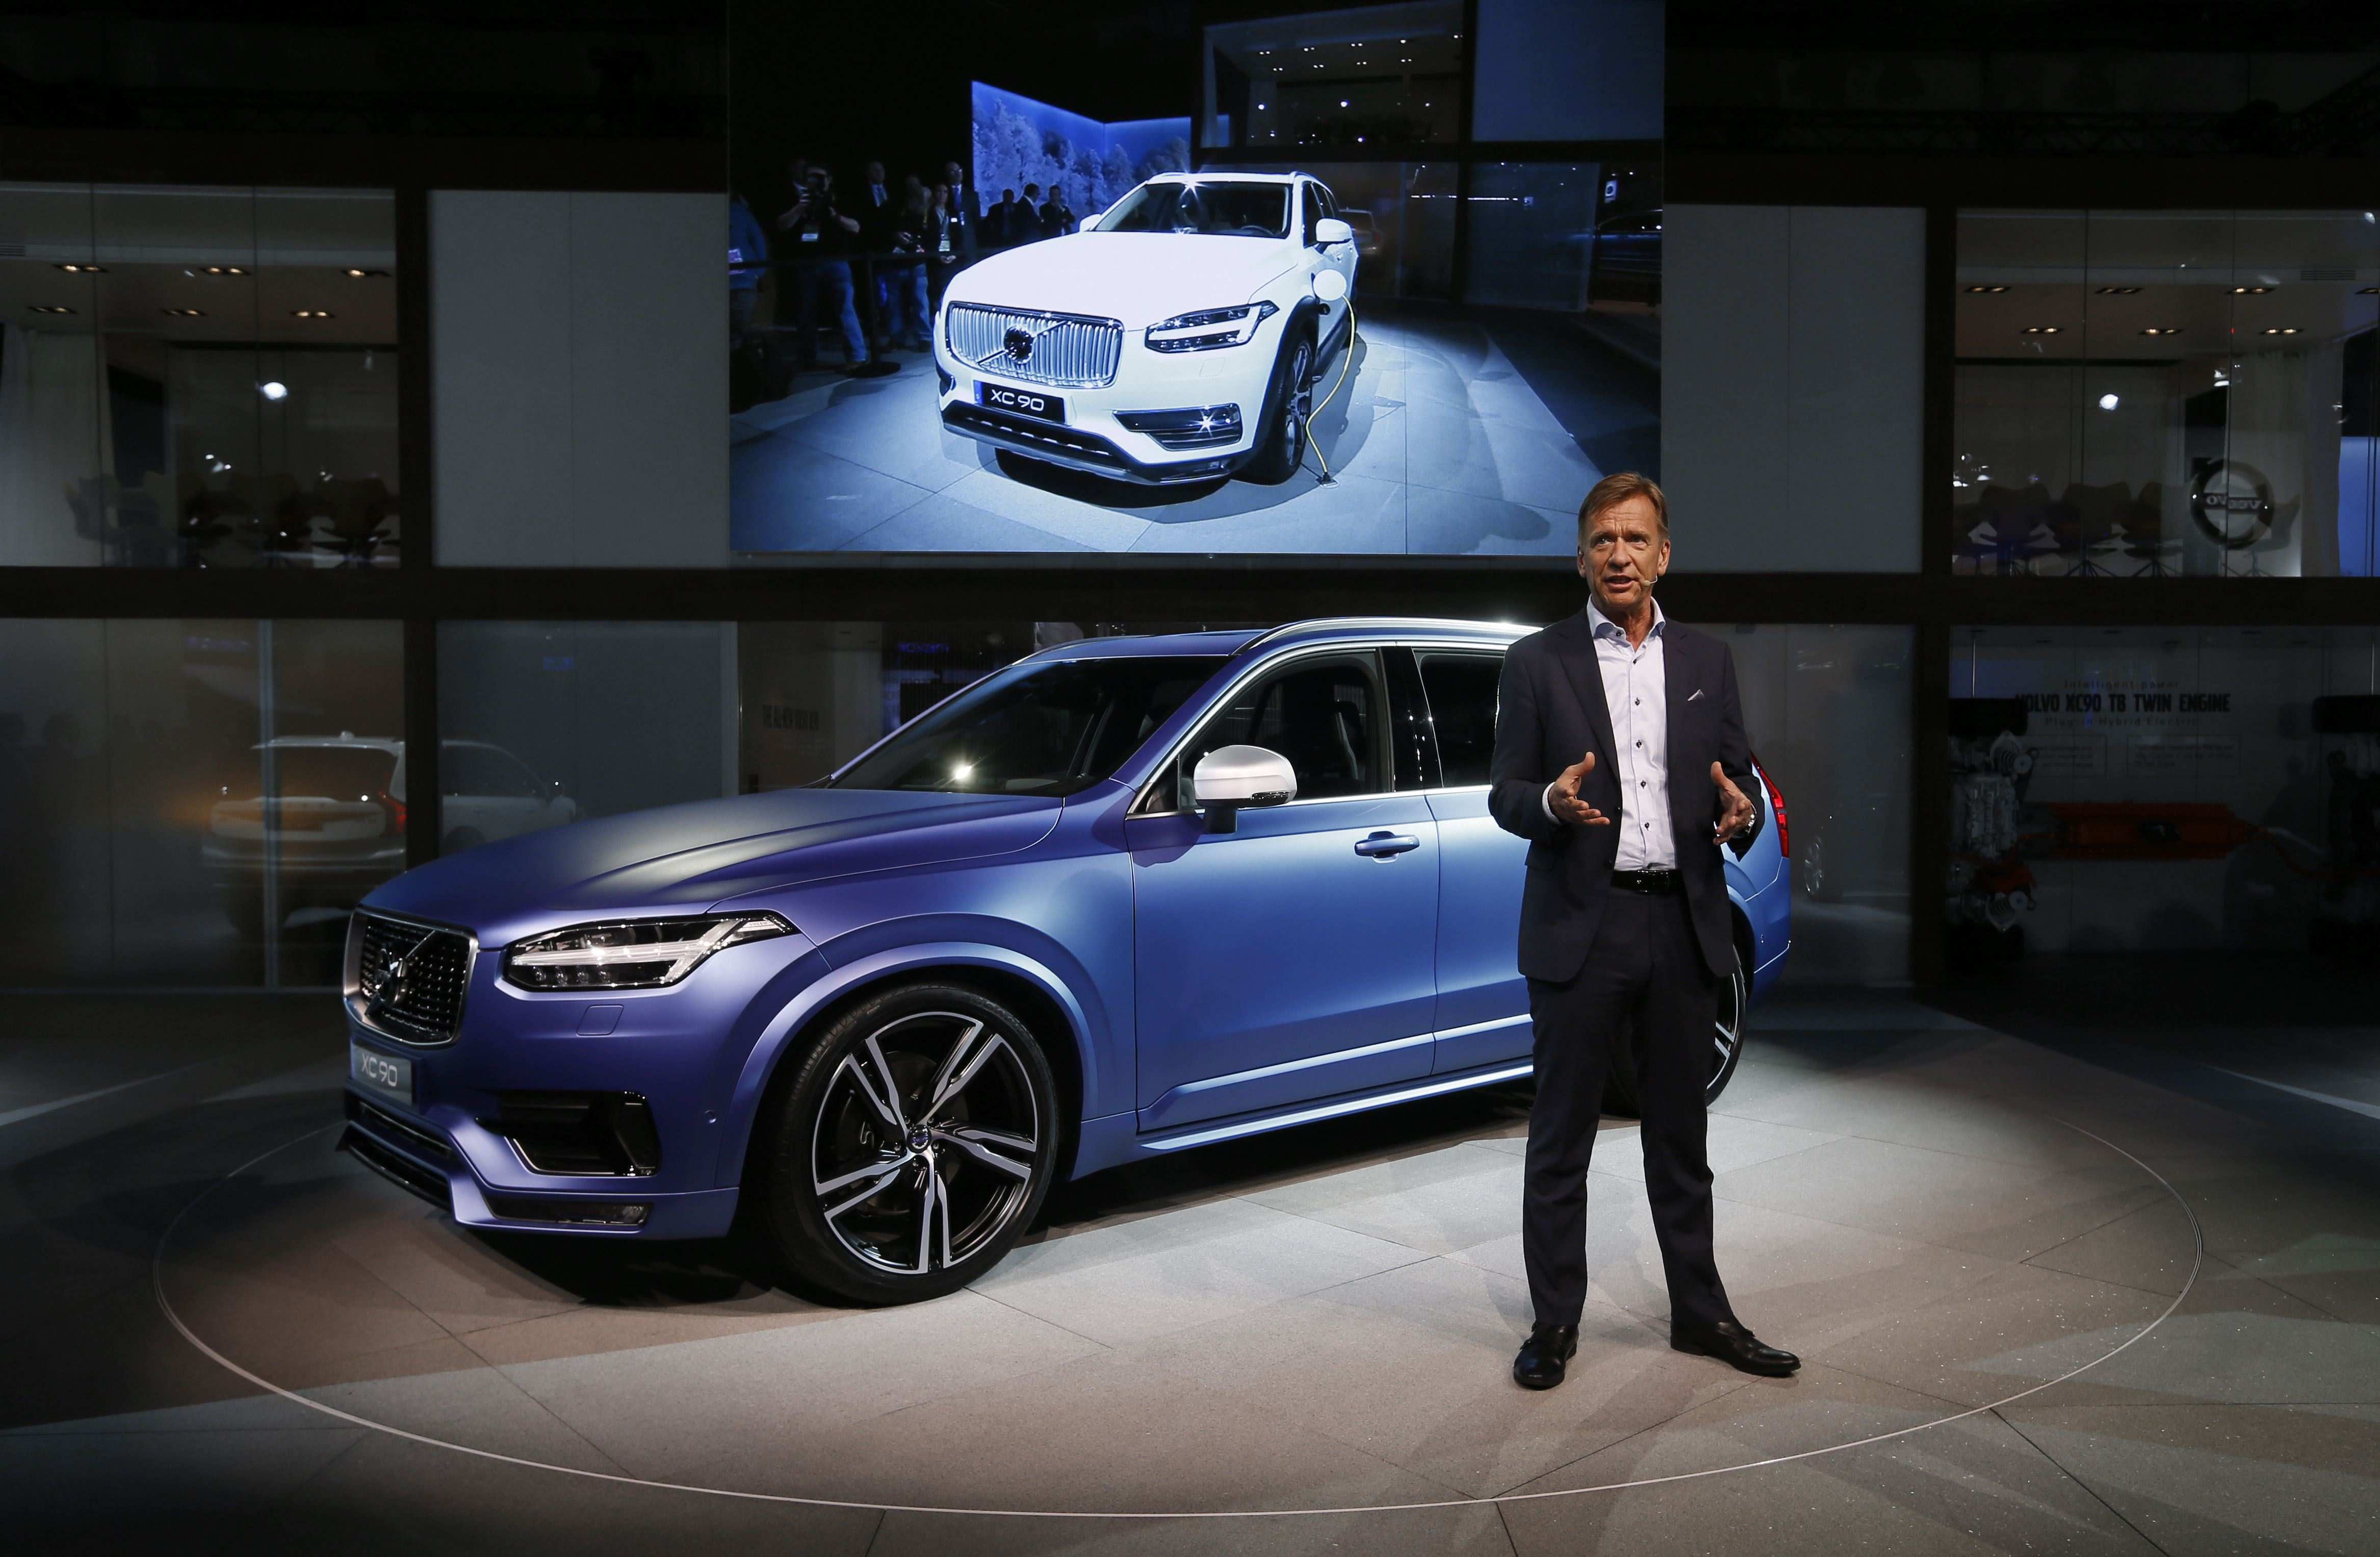 69 New Volvo Death Proof Cars By 2020 Rumors with Volvo Death Proof Cars By 2020